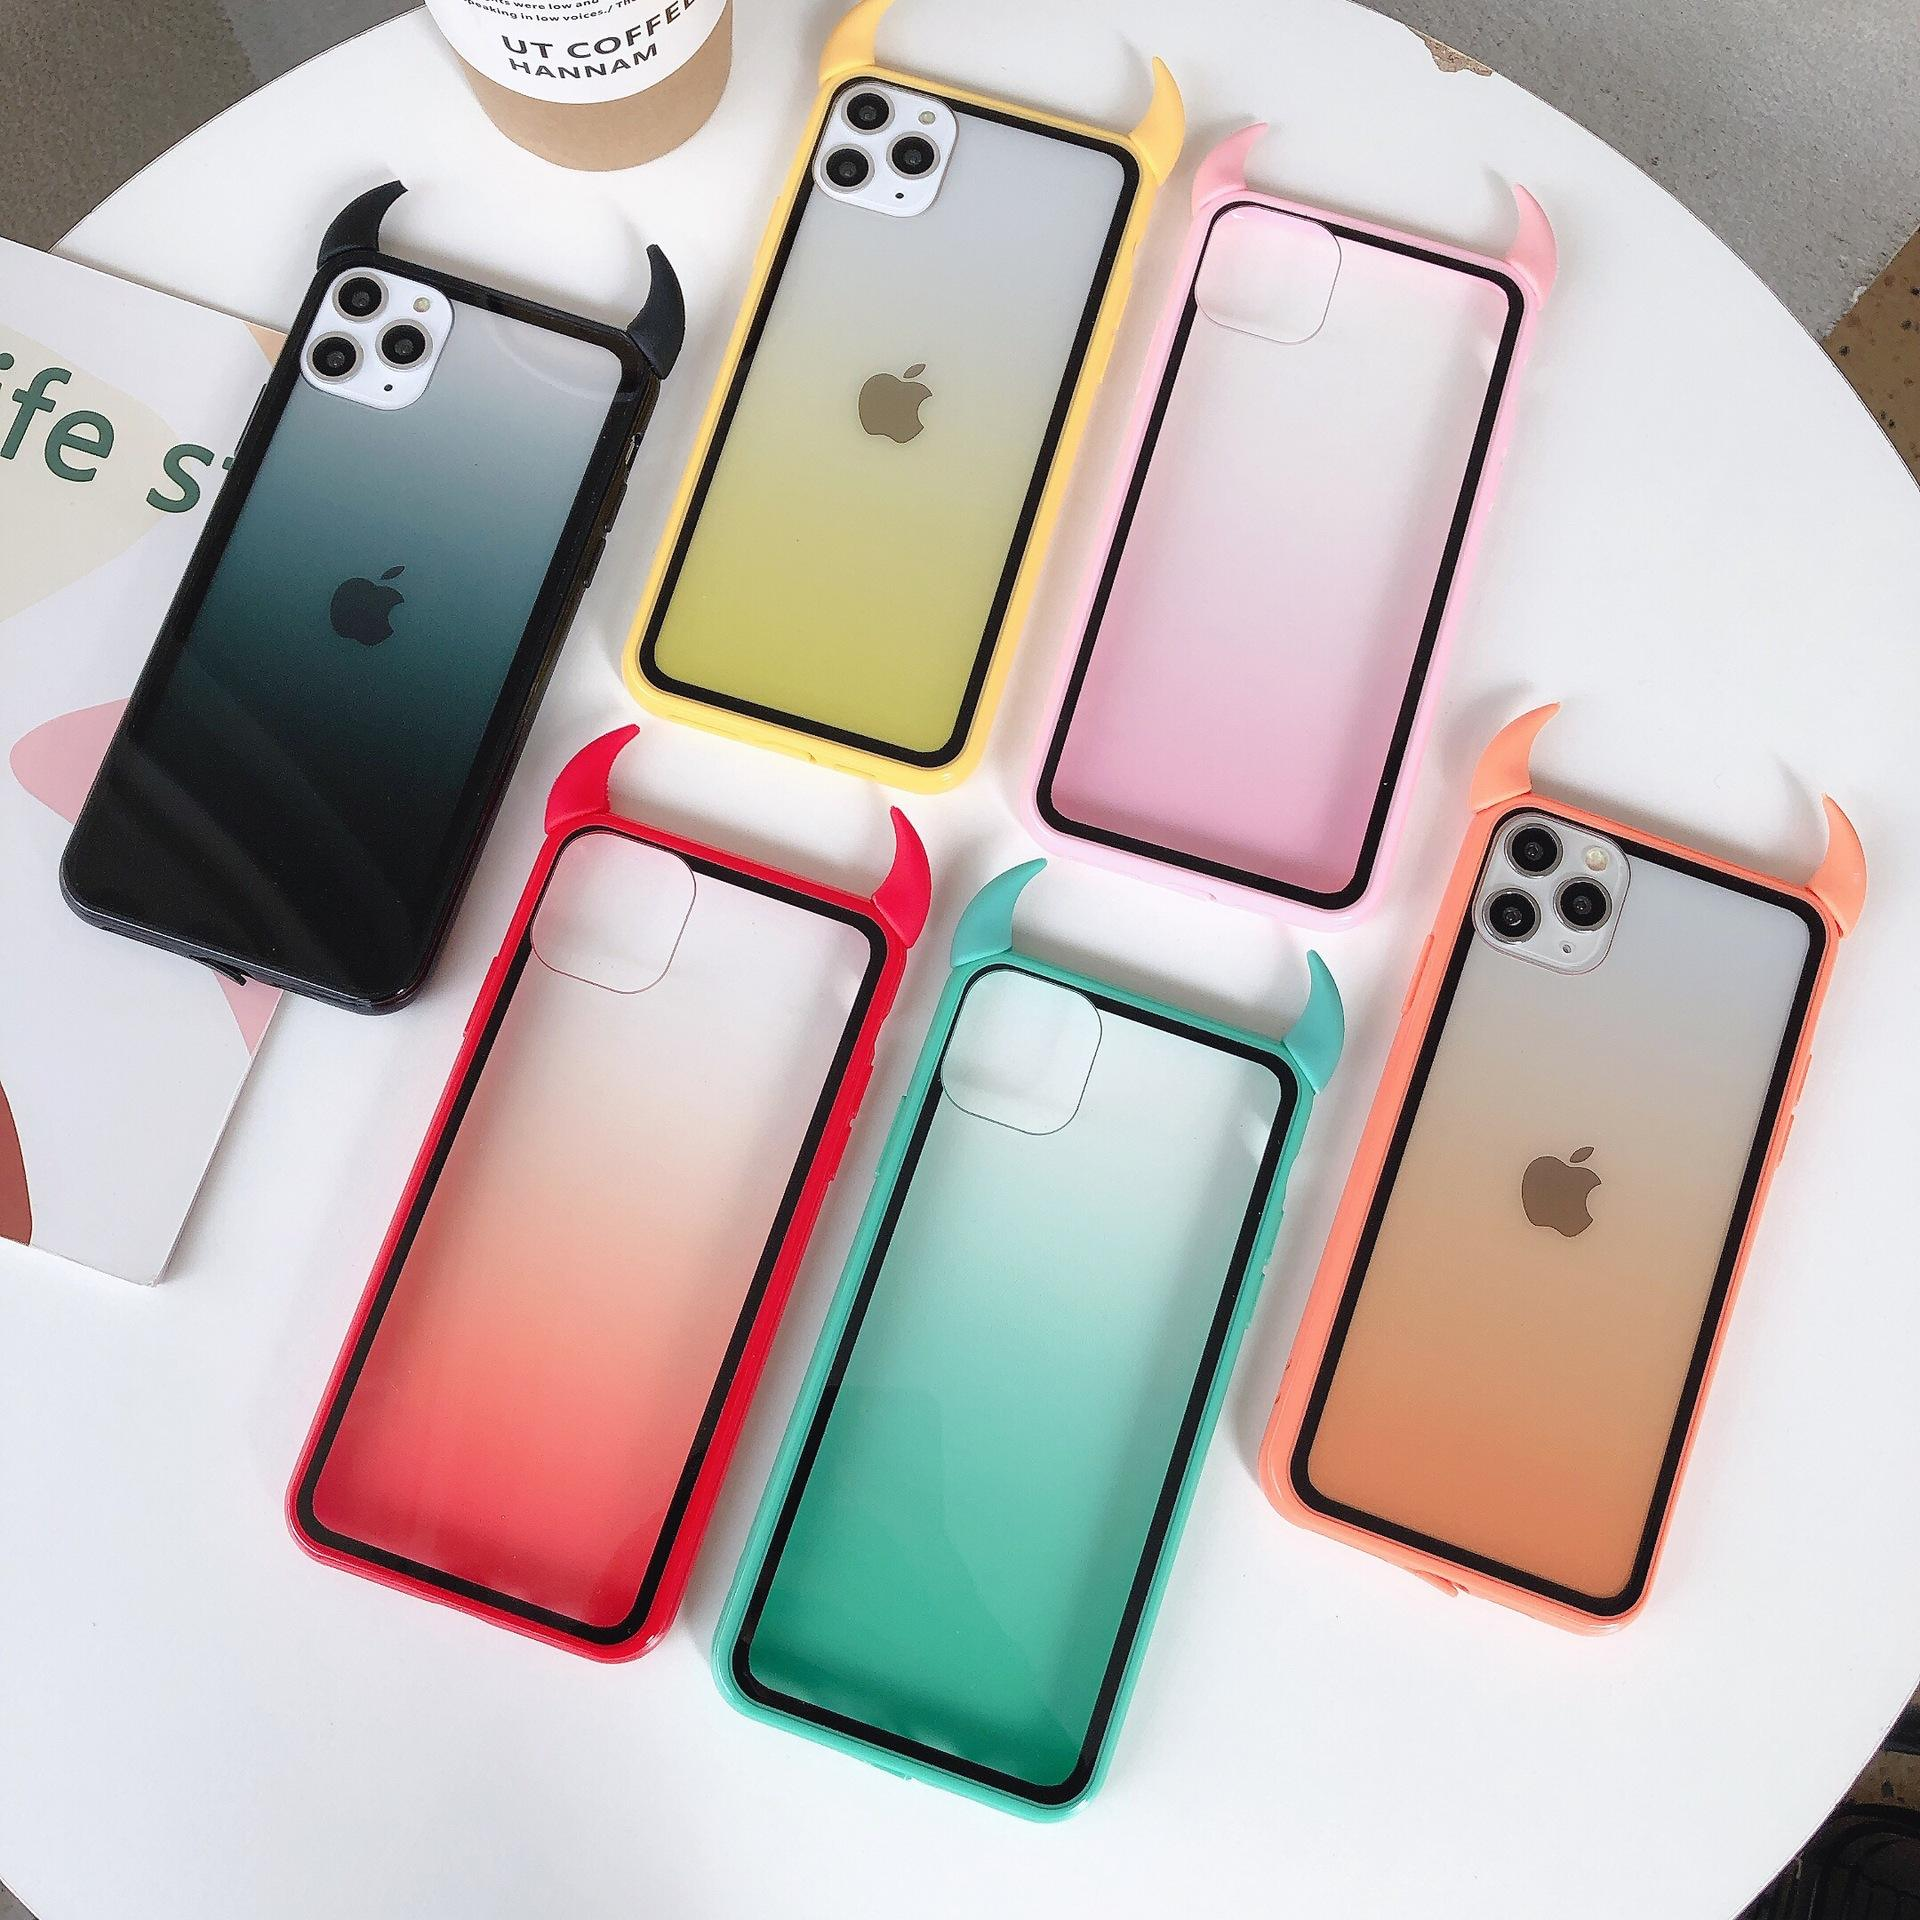 Hot Sale Cool Gradient Cute Devil Horn Phone Case for iPhone 12 Rainbow Clear Acrylic Back Cover For iPhone 11/8/7/XR/X/XS/Max